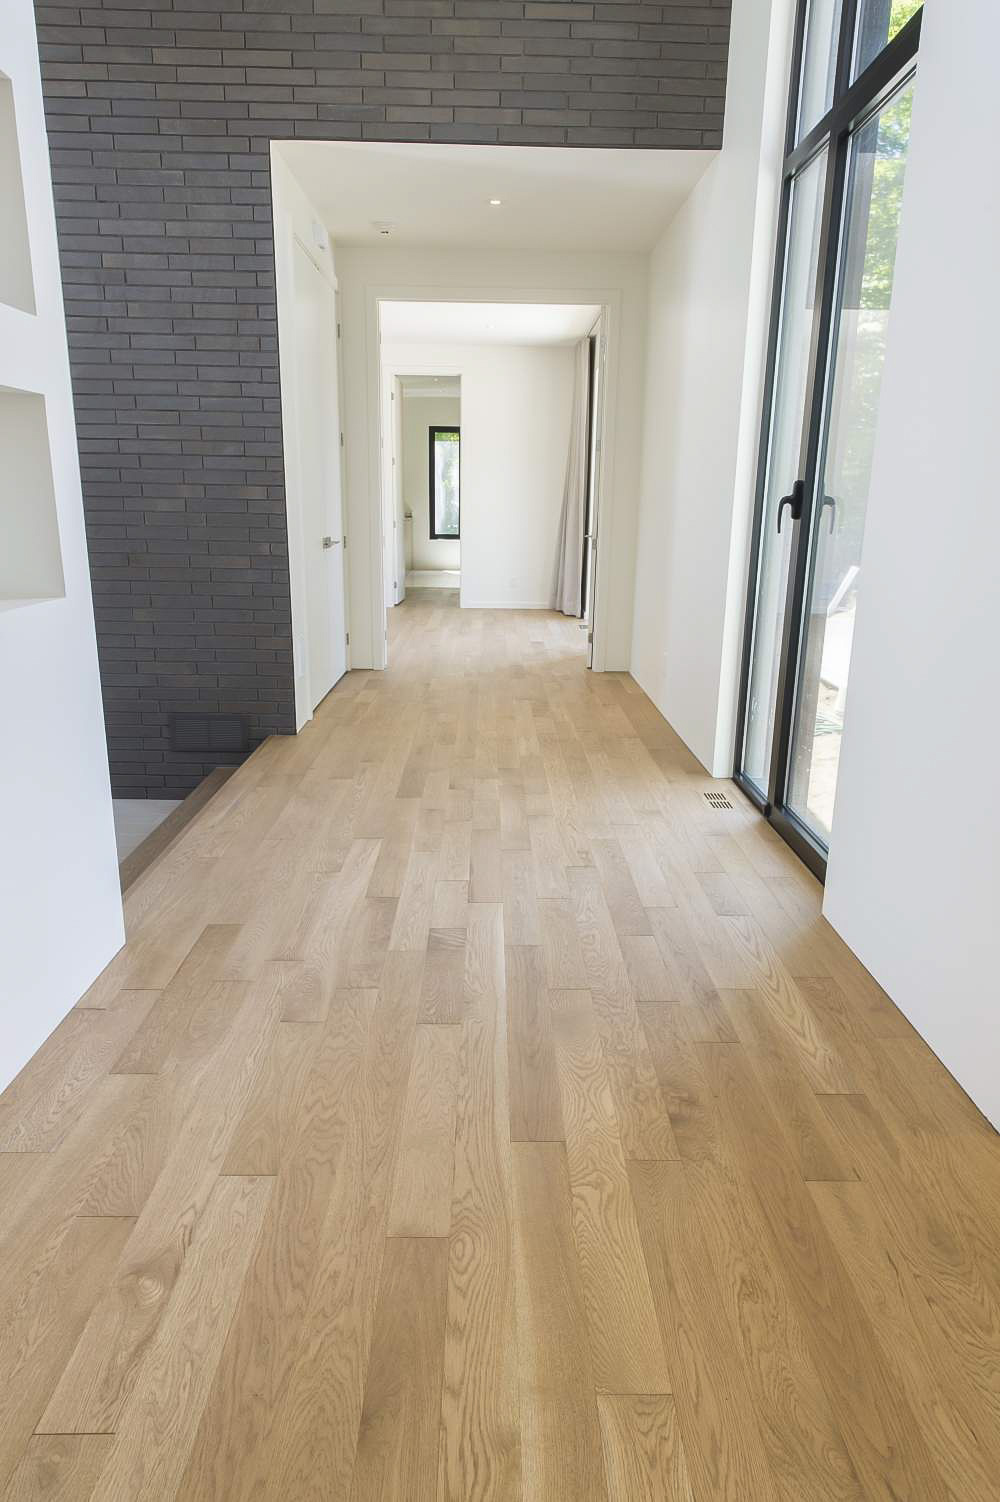 plancher-standard-chene-blanc-select-naturel–huile-rubio-vieux-france-5.jpg